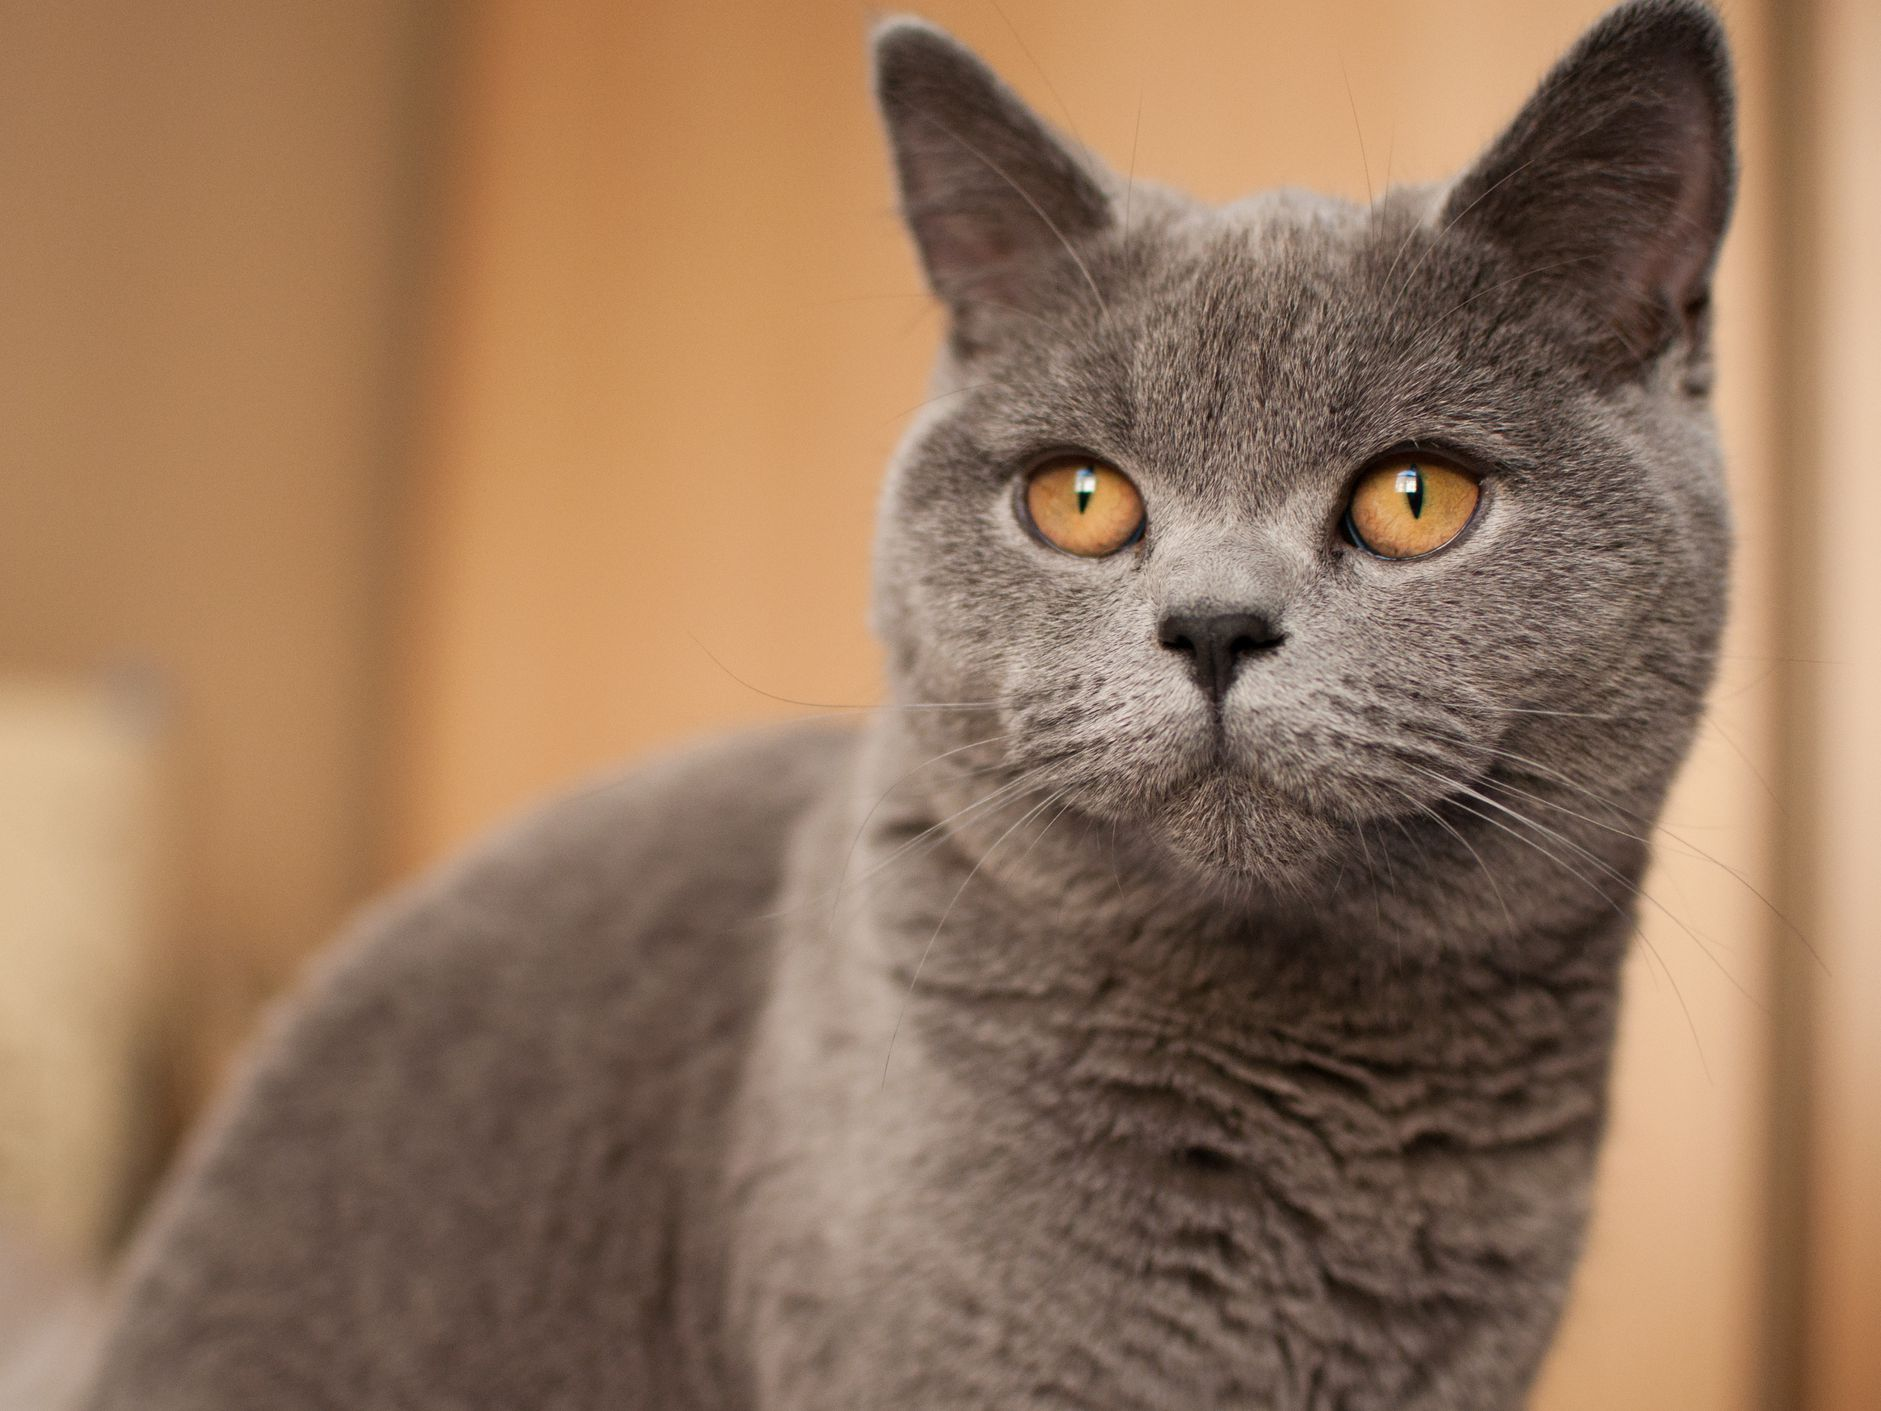 British Shorthair — Full Profile, History, and Care